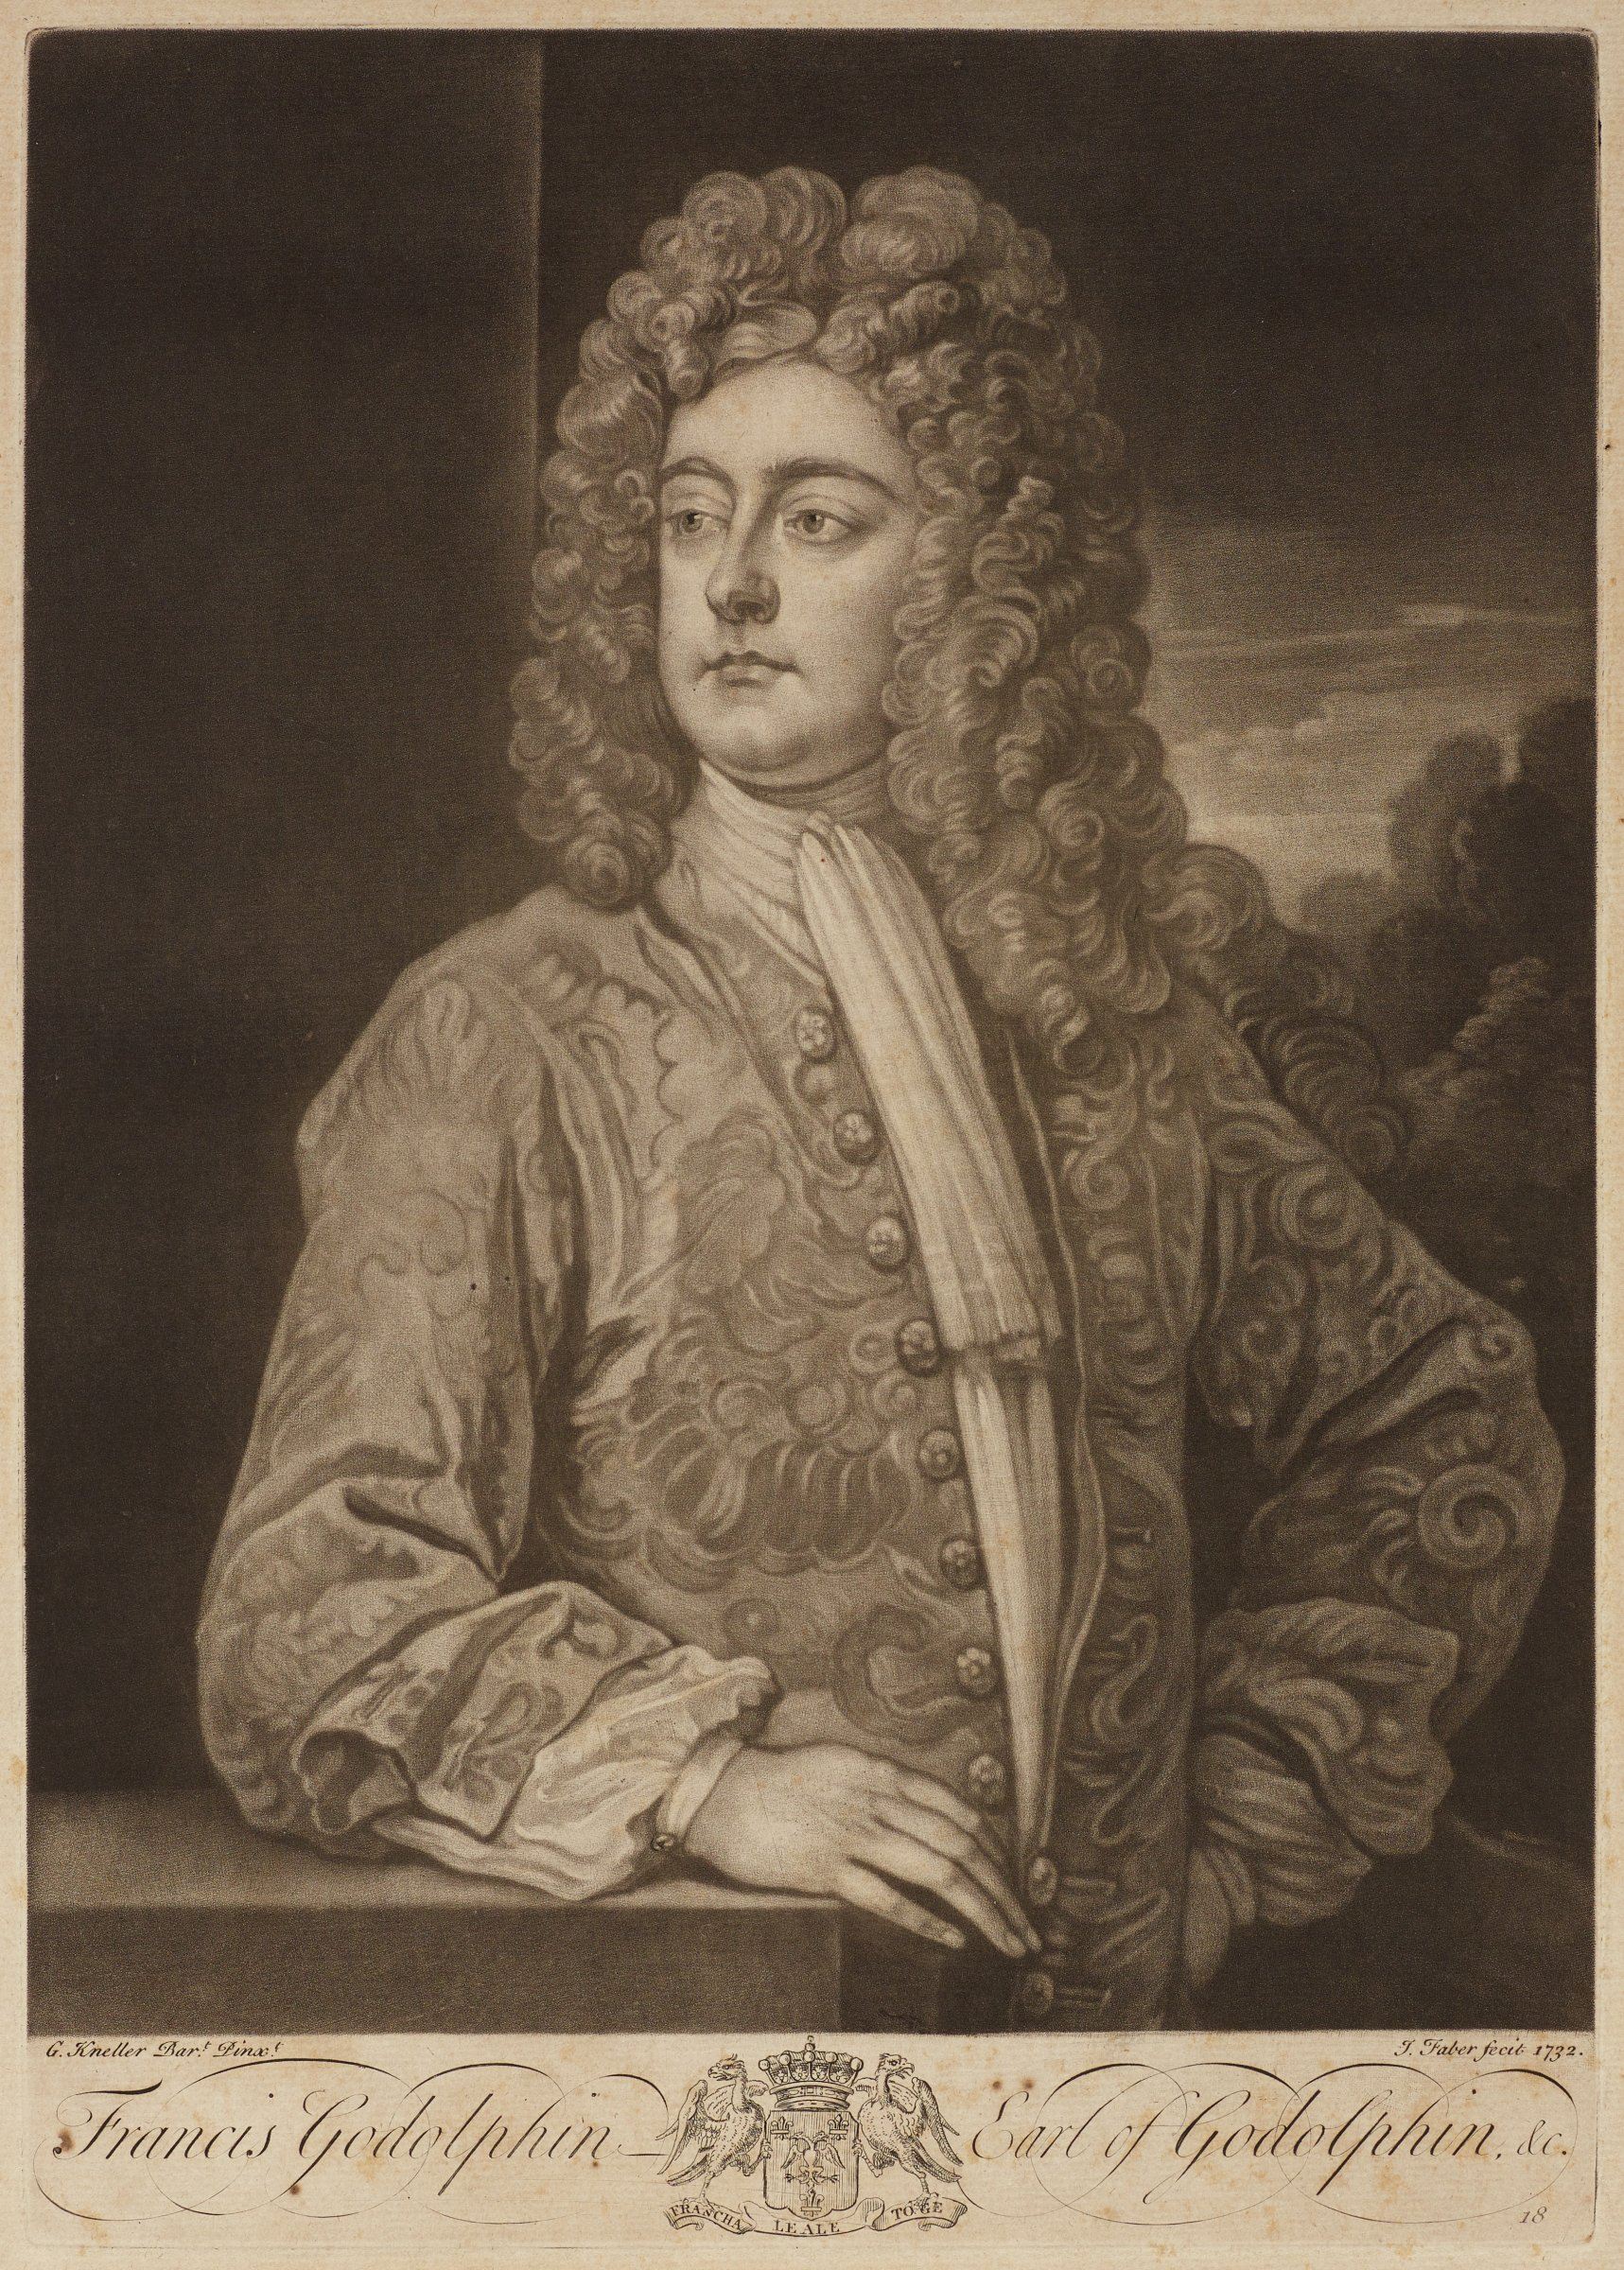 Half length portrait of Francis Godolphin. He is portrayed with long curly hair and floral jacket. His body faces the right as he turns his head to the left. A landscape is seen behind him on the right.